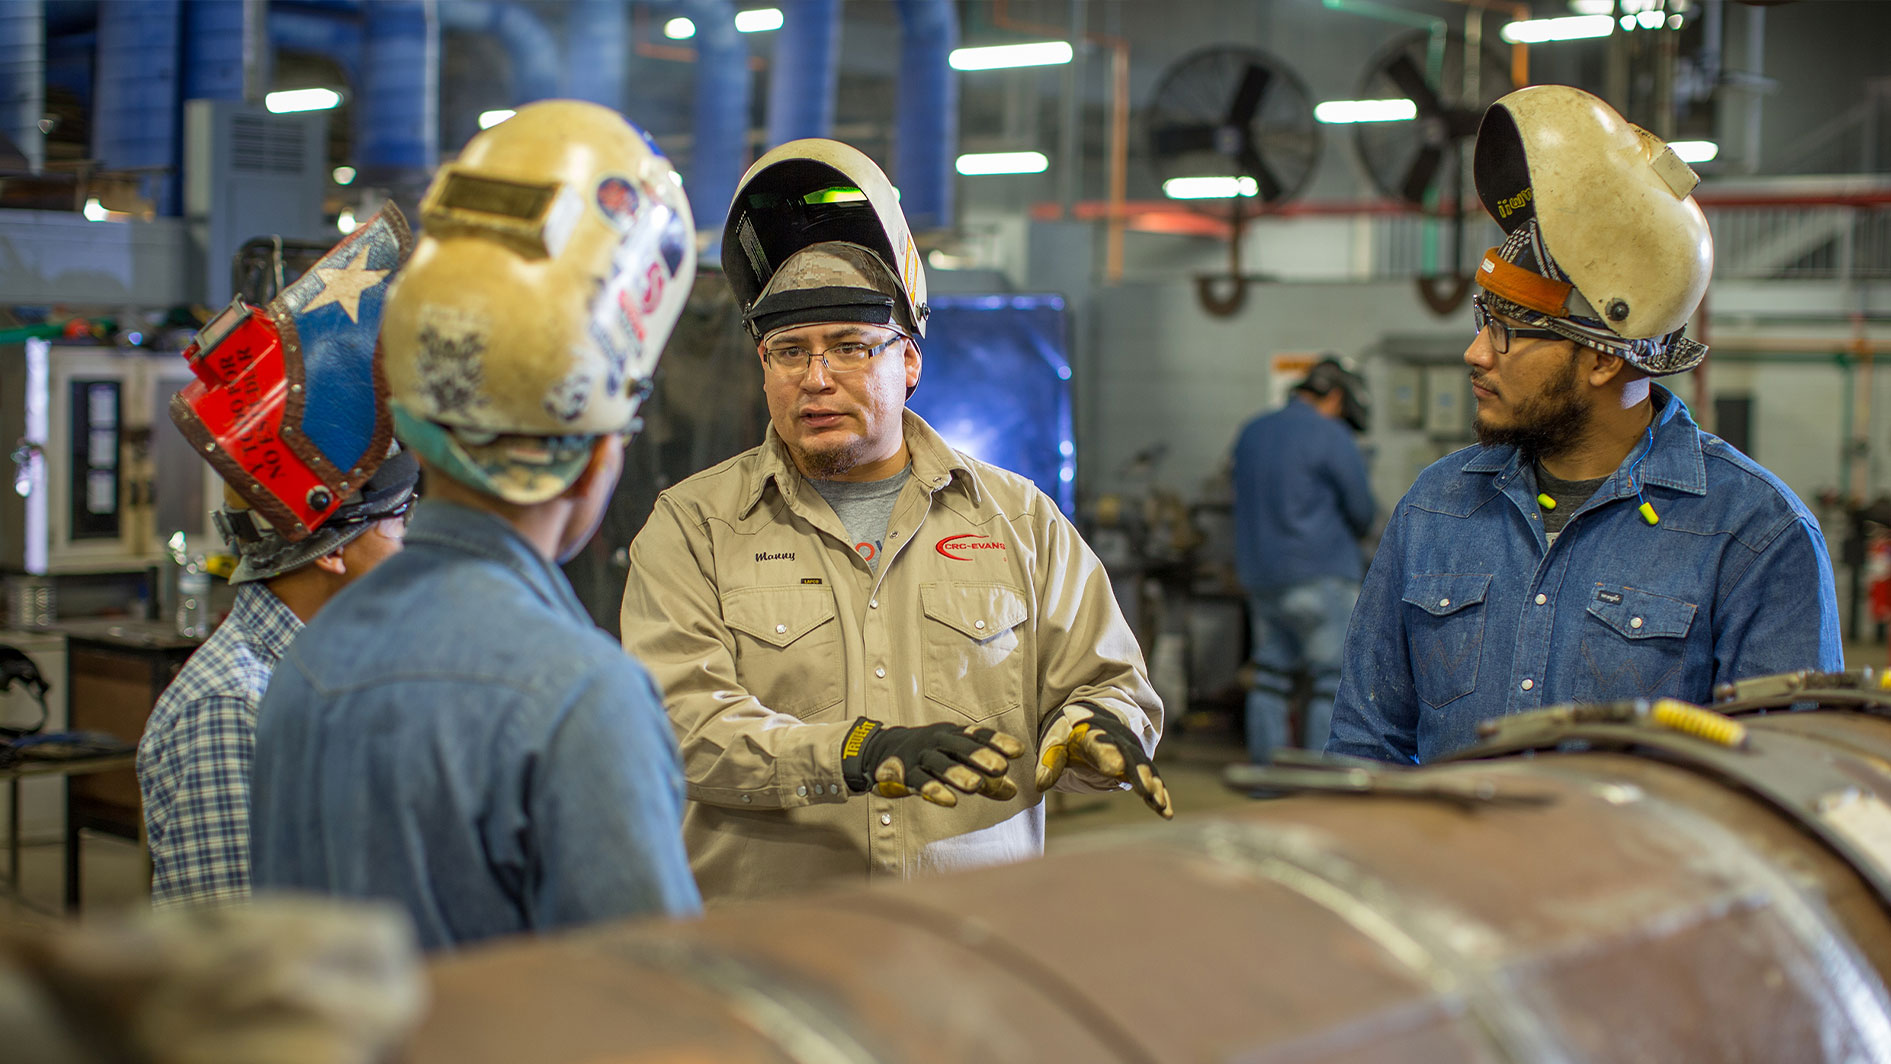 Welding Training Provides A World Full of Opportunities